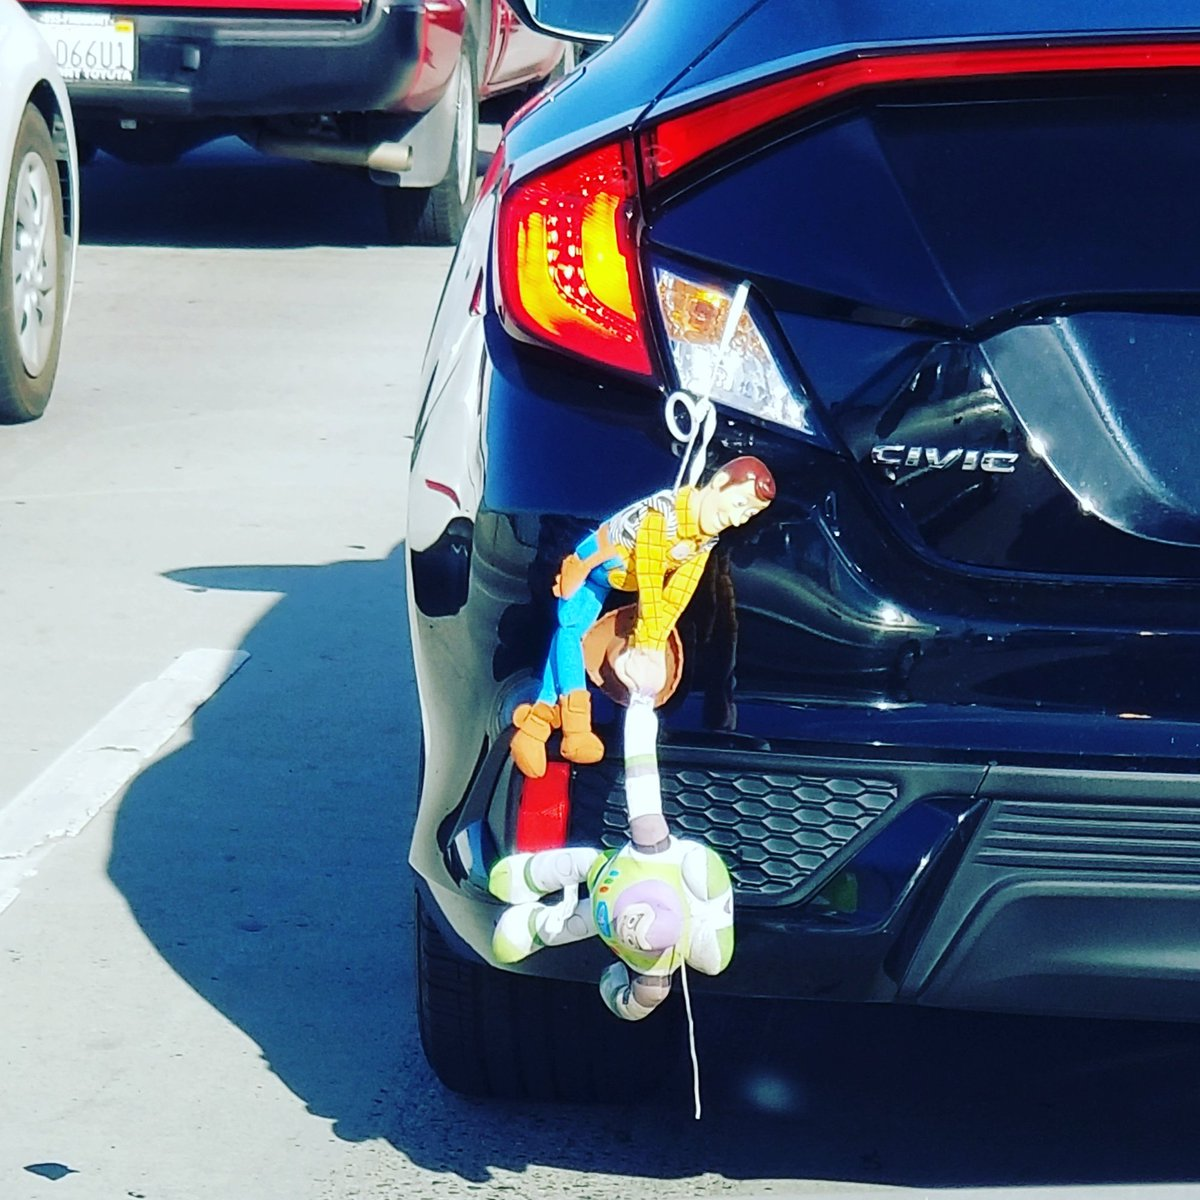 #BayAreatraffic has its moments. #woodyandbuzz pic.twitter.com/M1cFXTyPbR – at City of San José